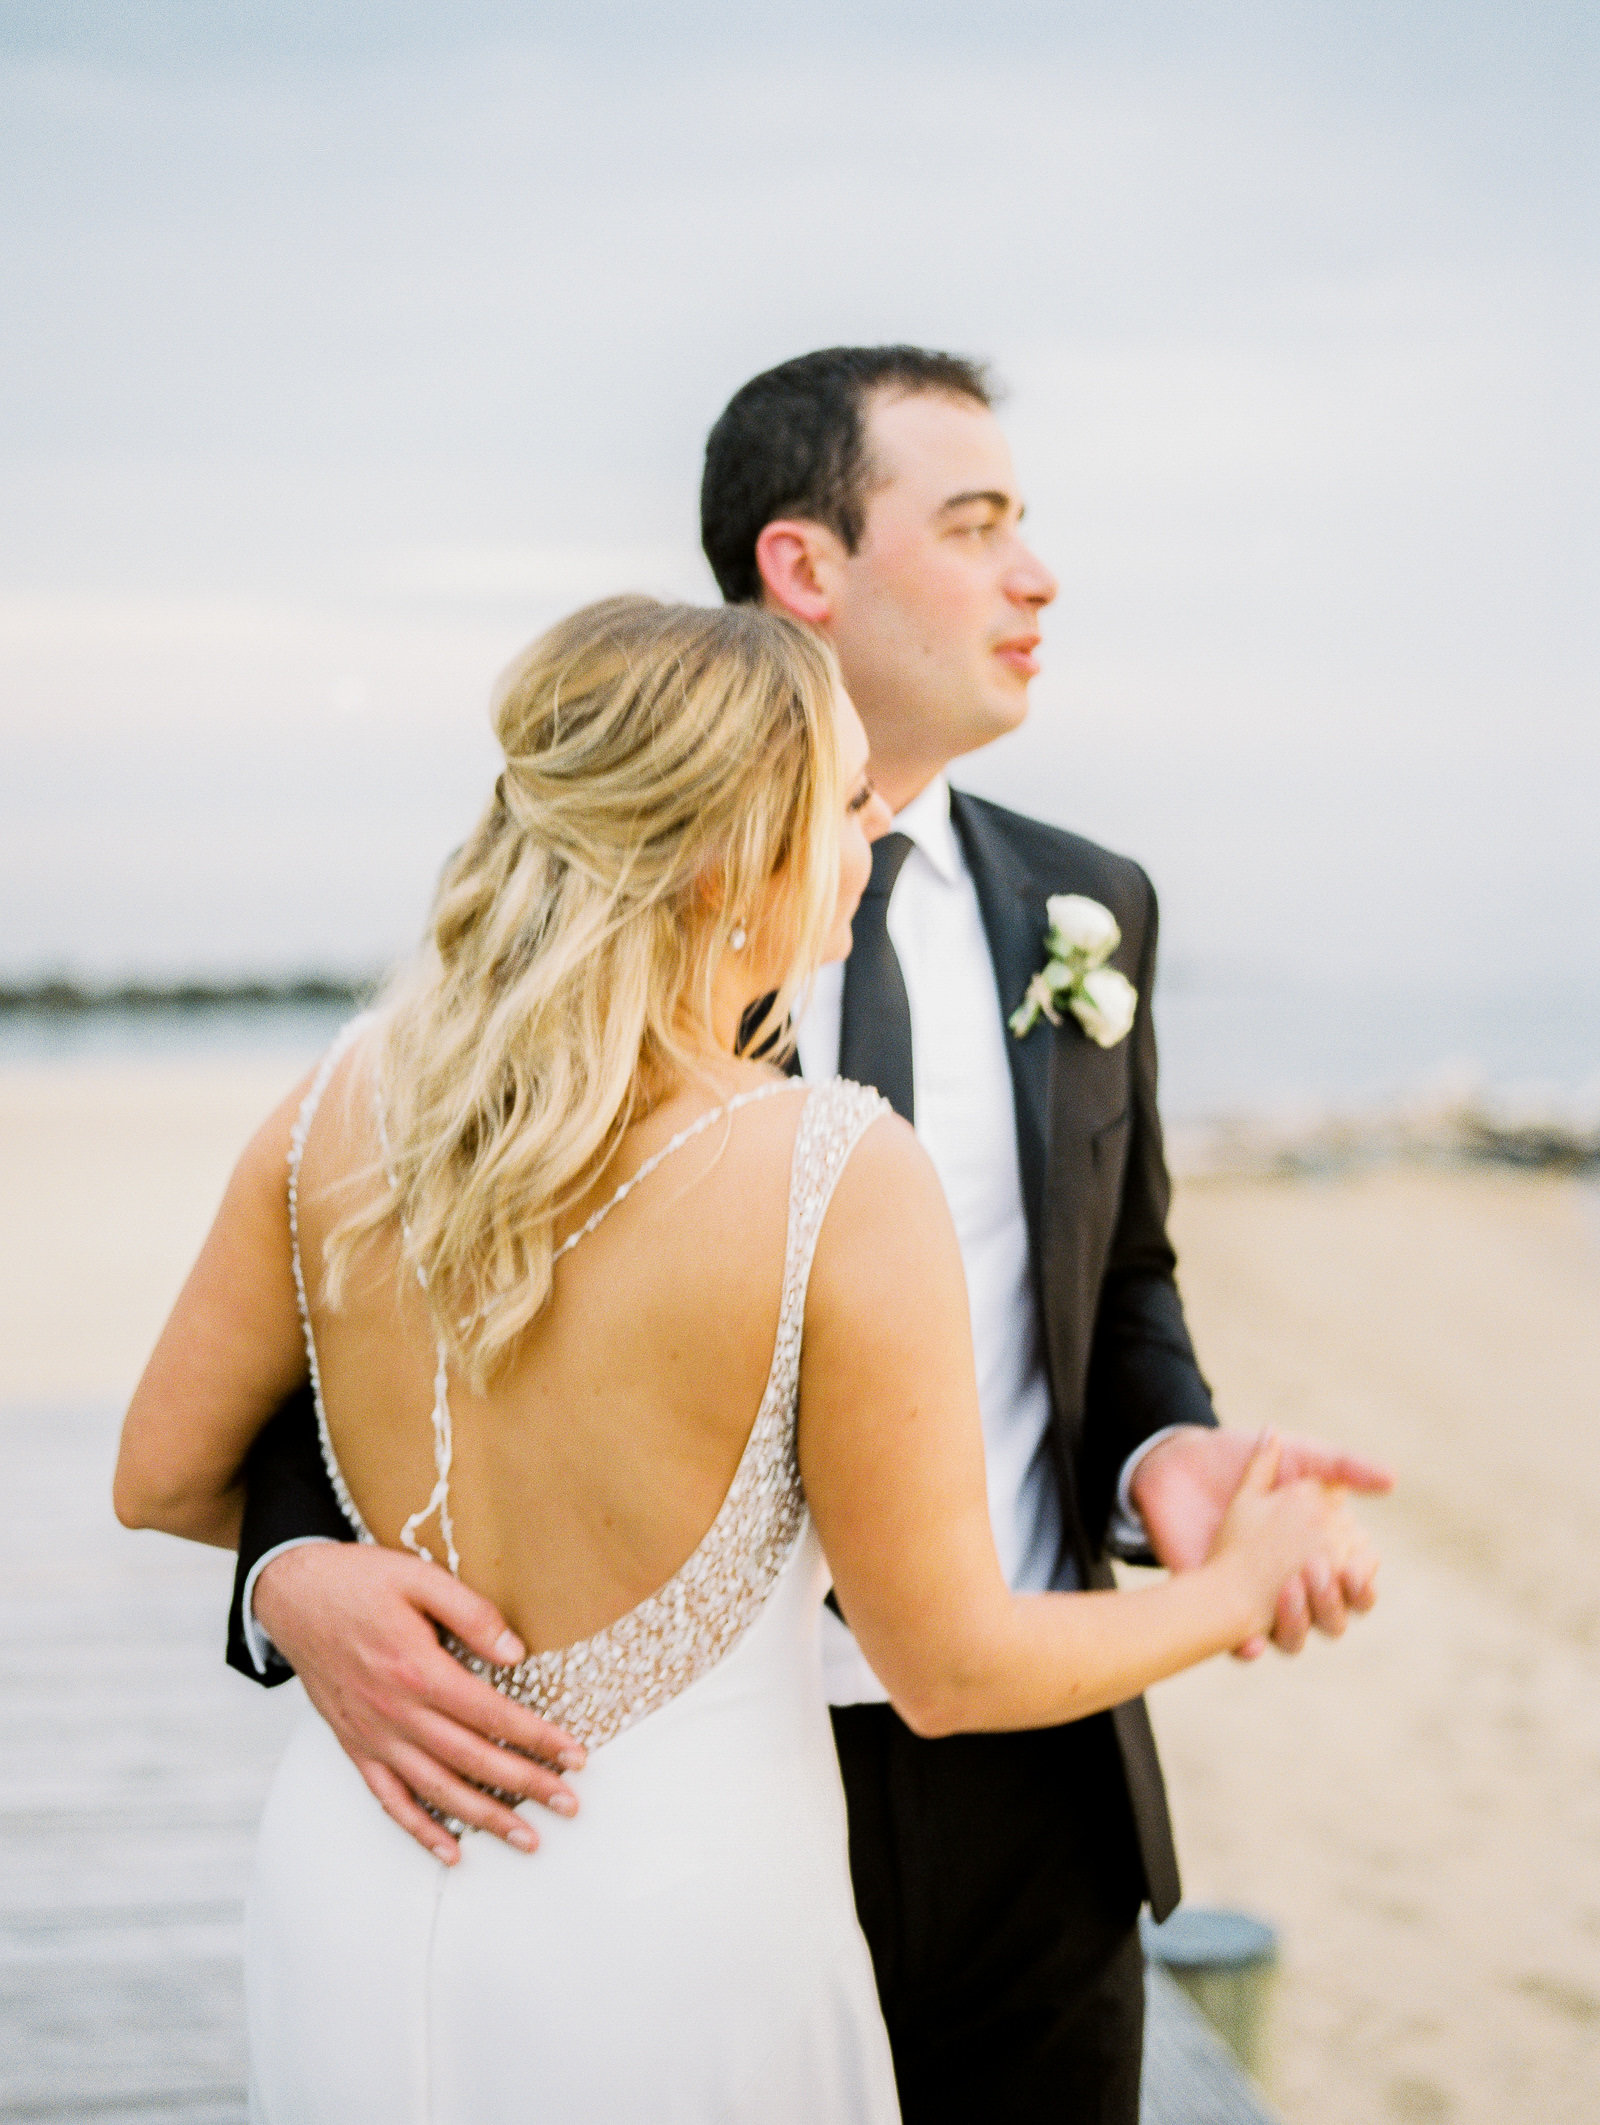 Megan_Harris_Photography_Fine_Art_Silver_Swan_Bayside_Maryland_Wedding_MeganHarris_Blog (92 of 110)